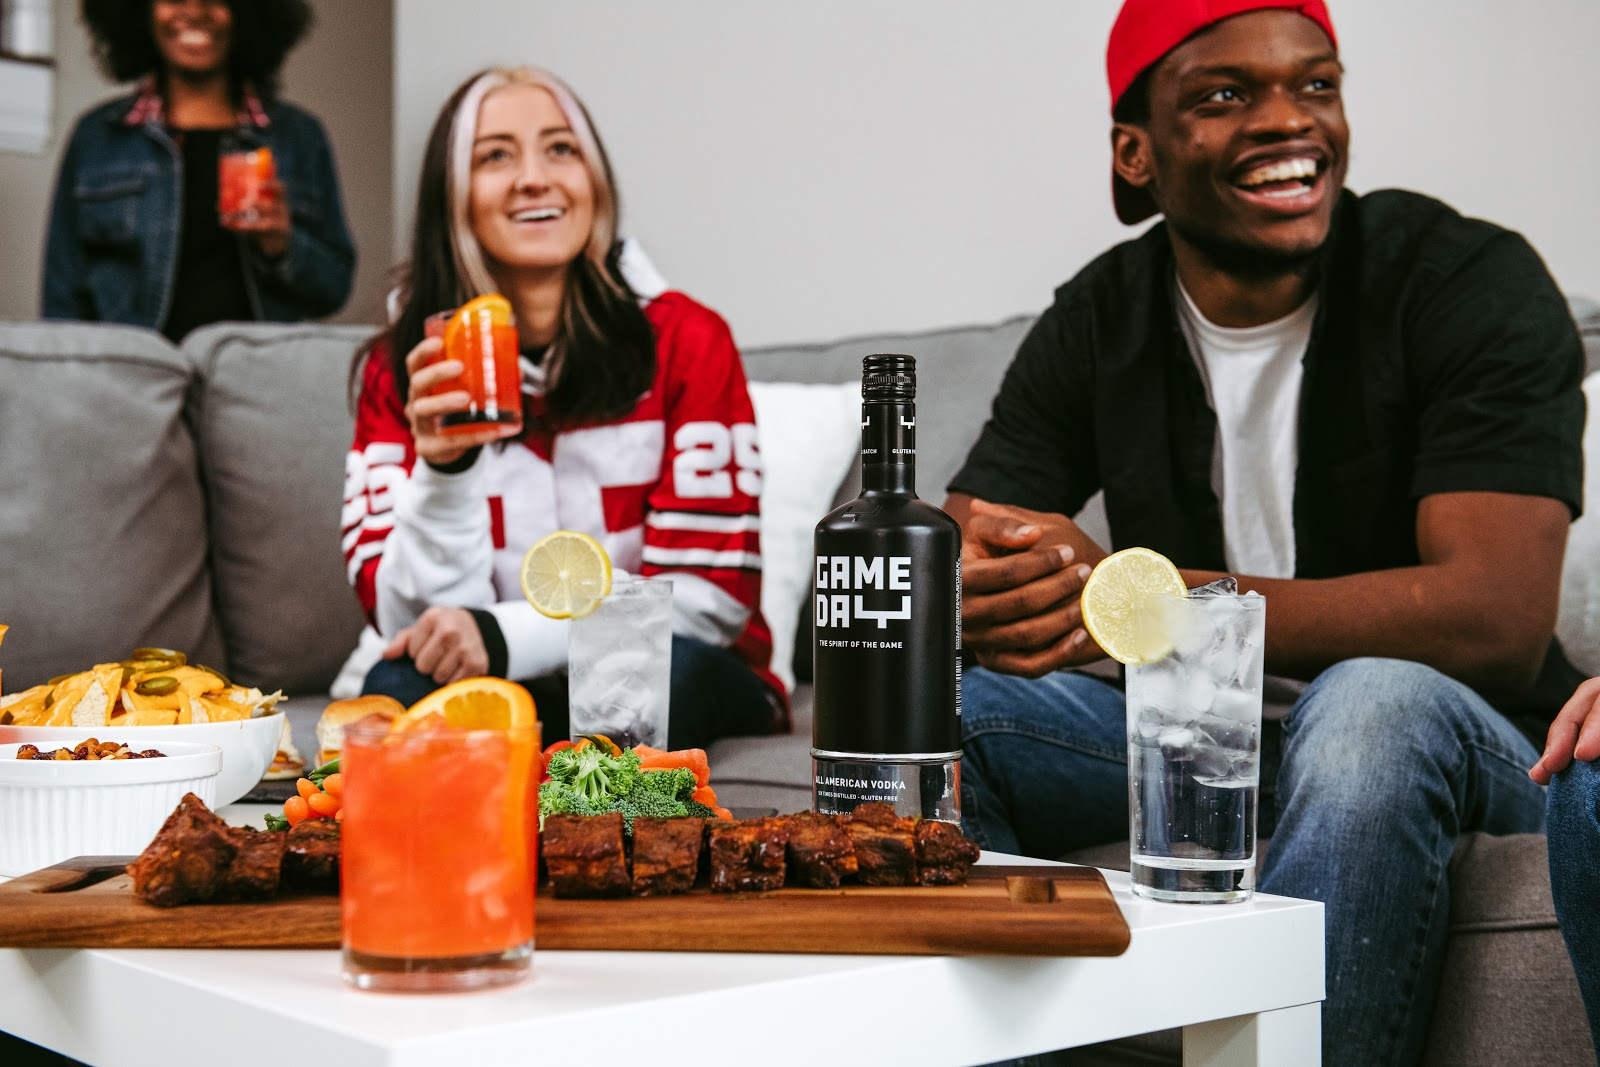 Fans watching with Tampa Super Bowl Drink in hand